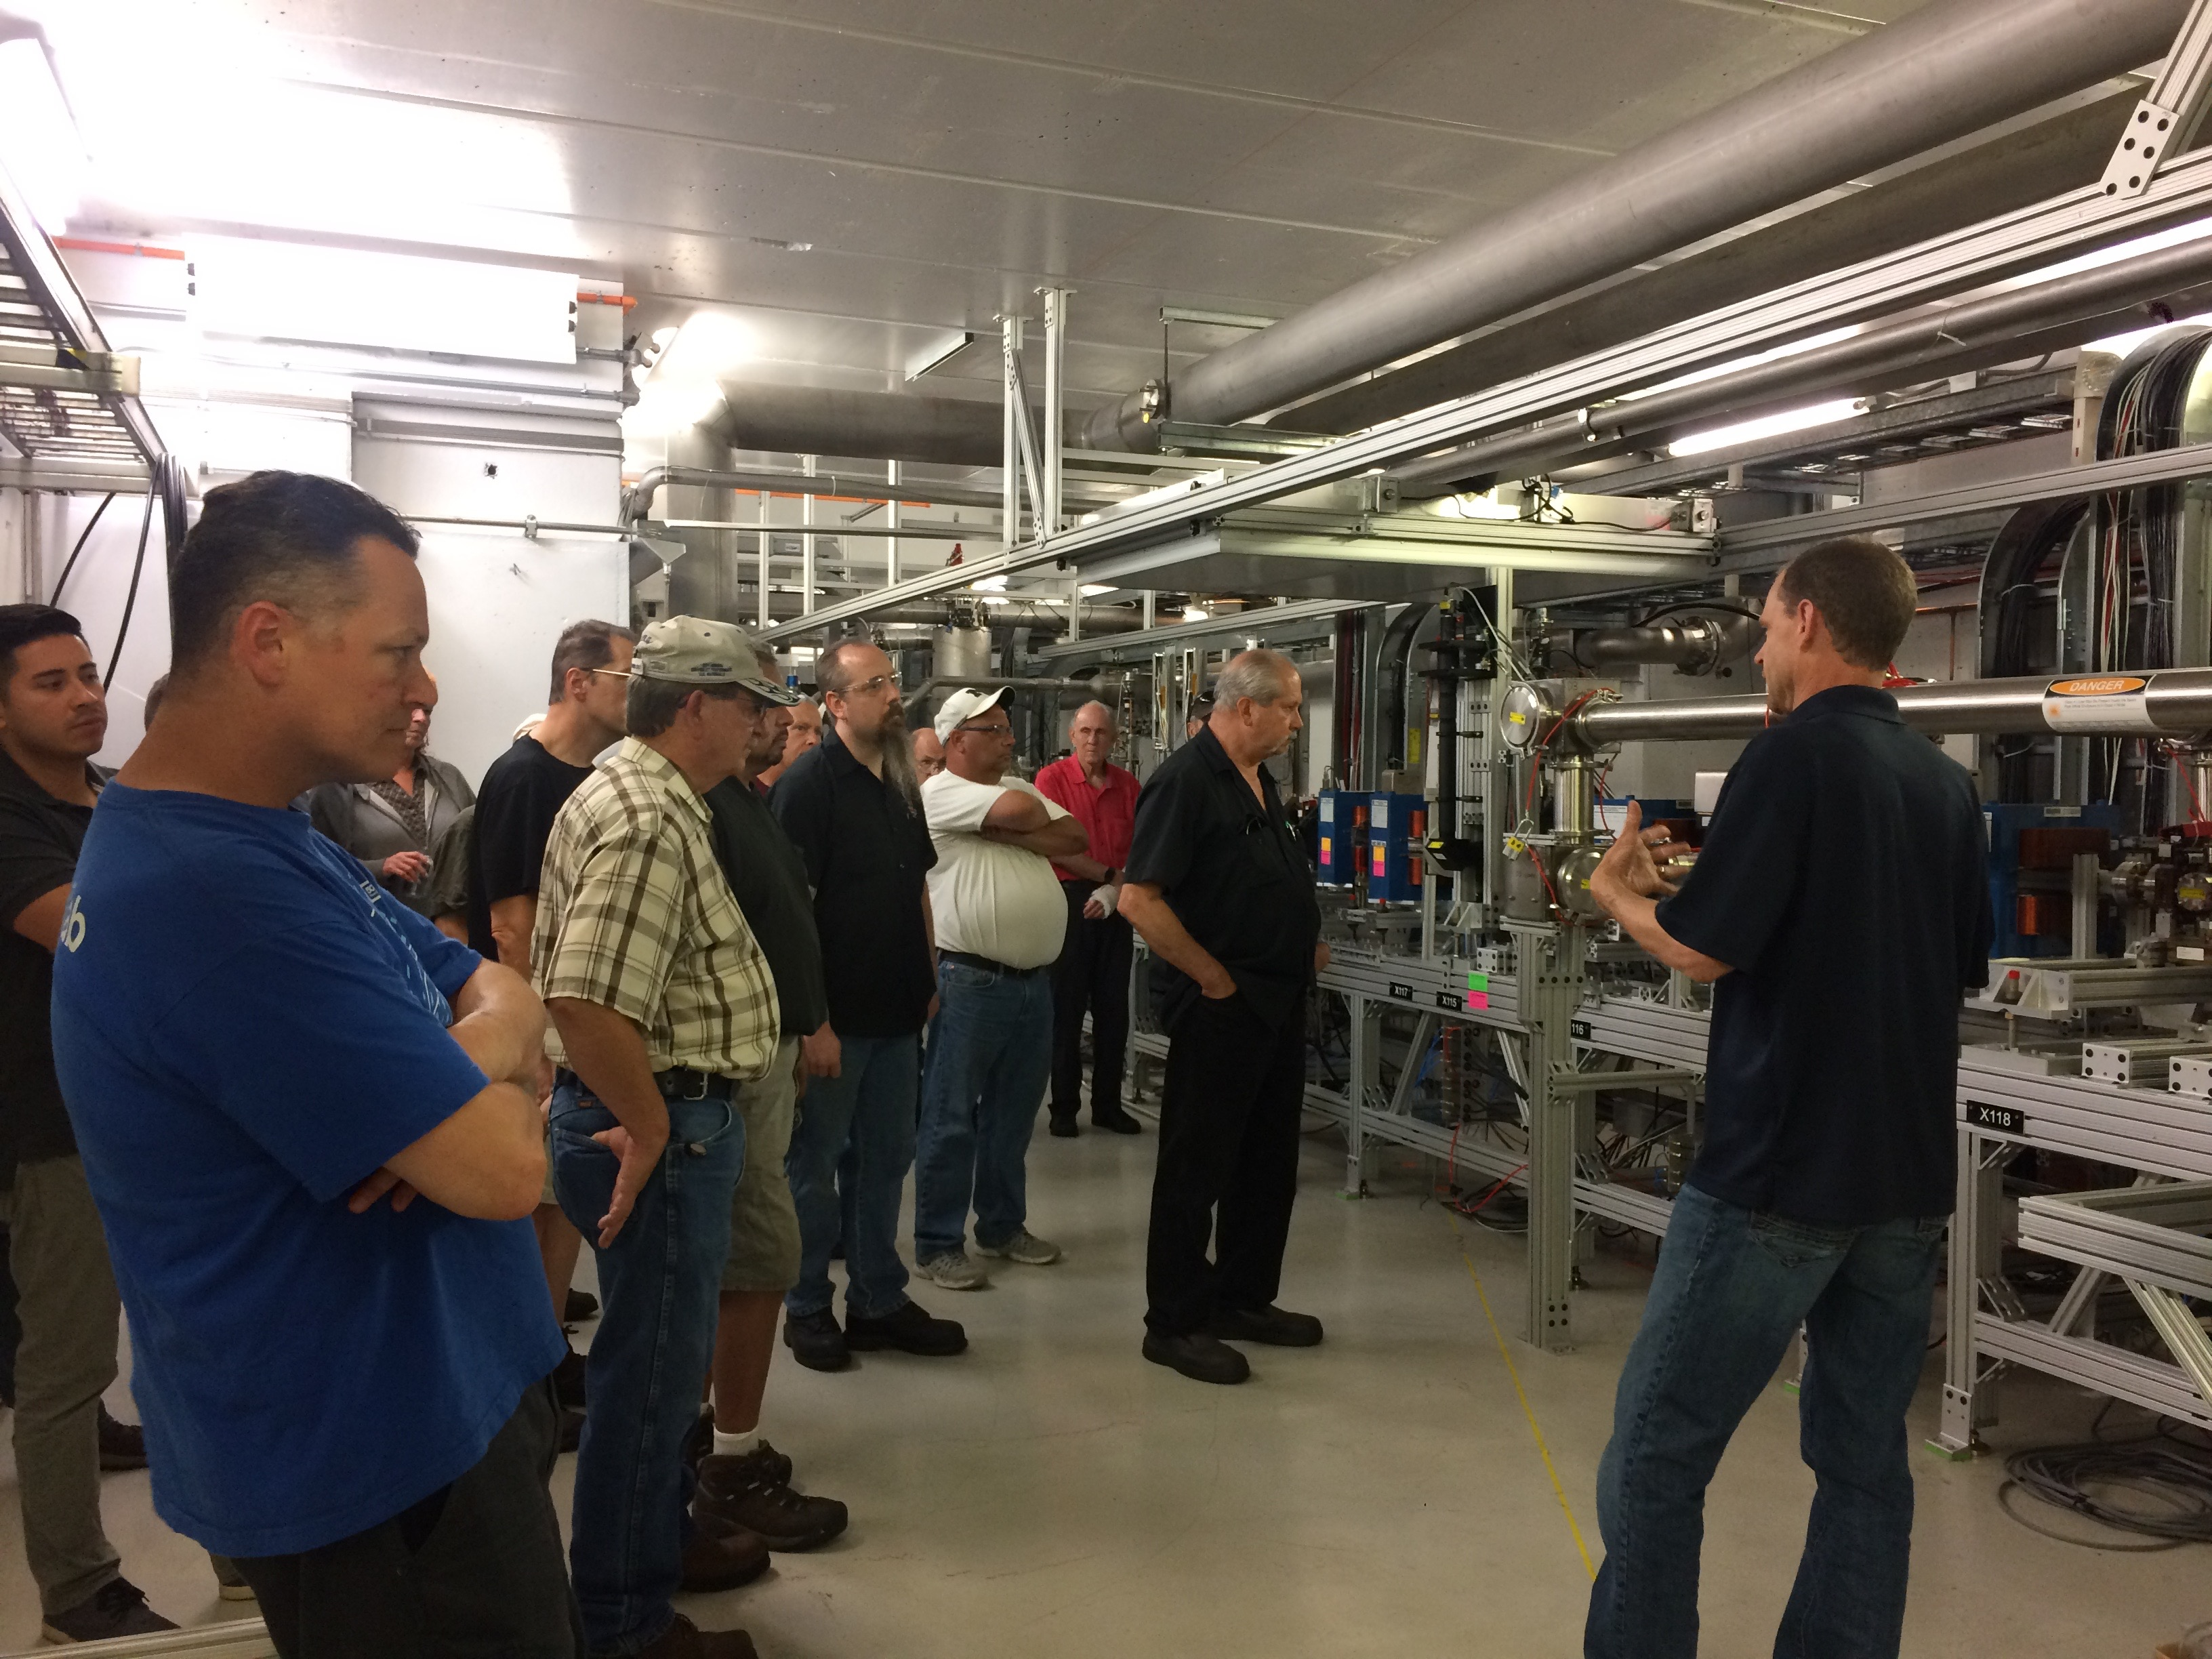 Fermilab machinists and welders get a tour of the FAST/IOTA accelerator to see the results of all their hard work. Photo: Linda Valerio, people, accelerator science, accelerator technology, accelerator, FAST, IOTA